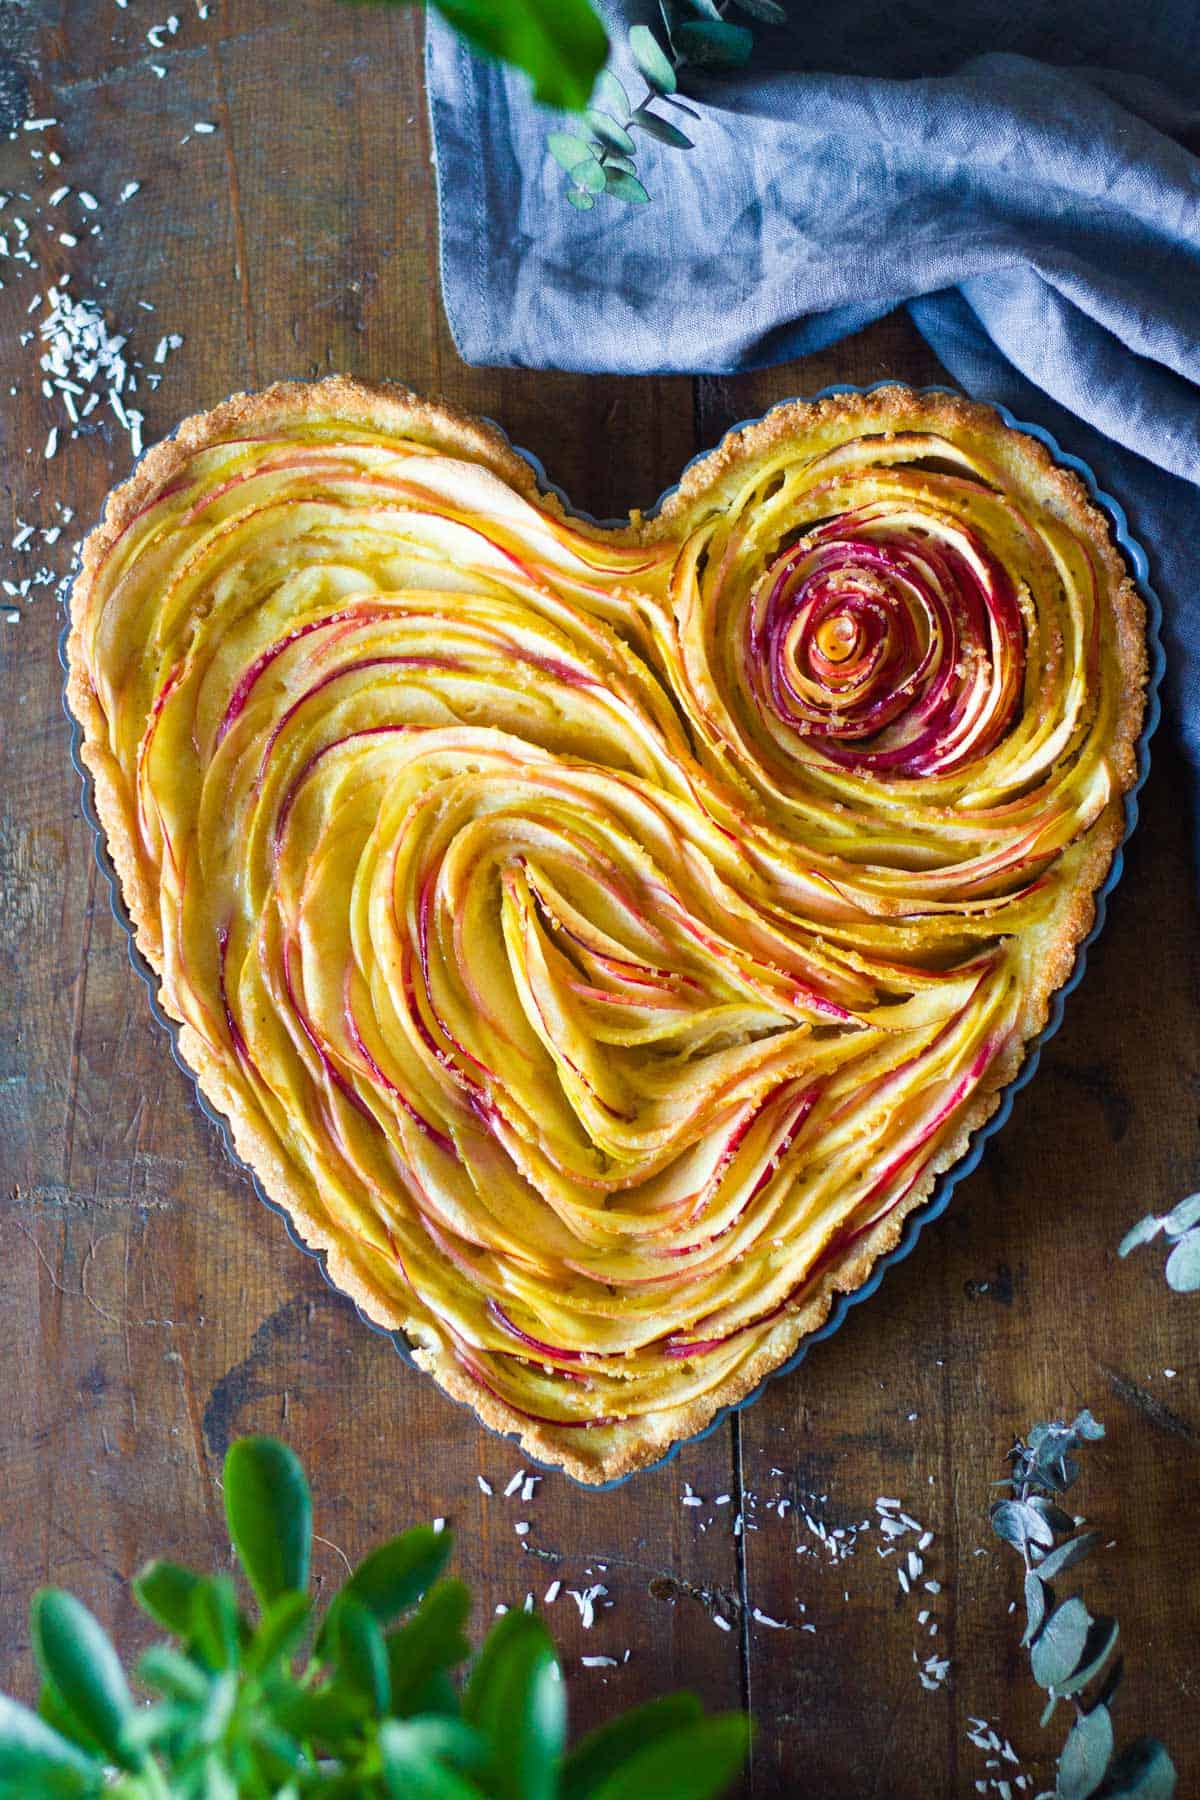 Baked apple tart in heart-shaped tart pan.